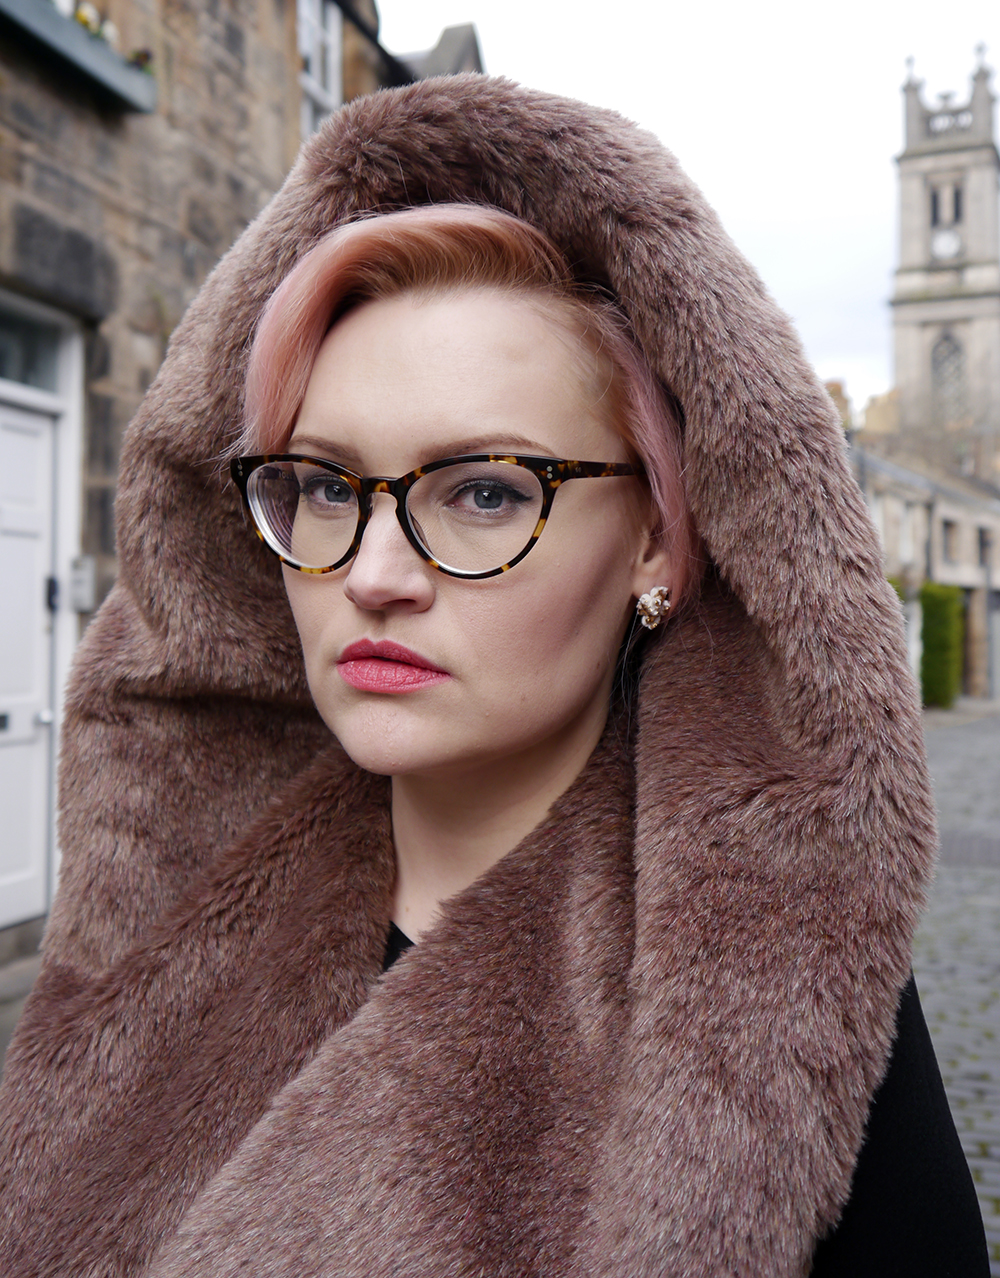 limited edition Chouchou Hollywood hood, #HOODSTYLIN, #HOODGIRLS, Dione Bowlt ceramic earrings, Stockbridge best streets, Edinburgh street style, natural light blog photography, candyfloss hair DIY,